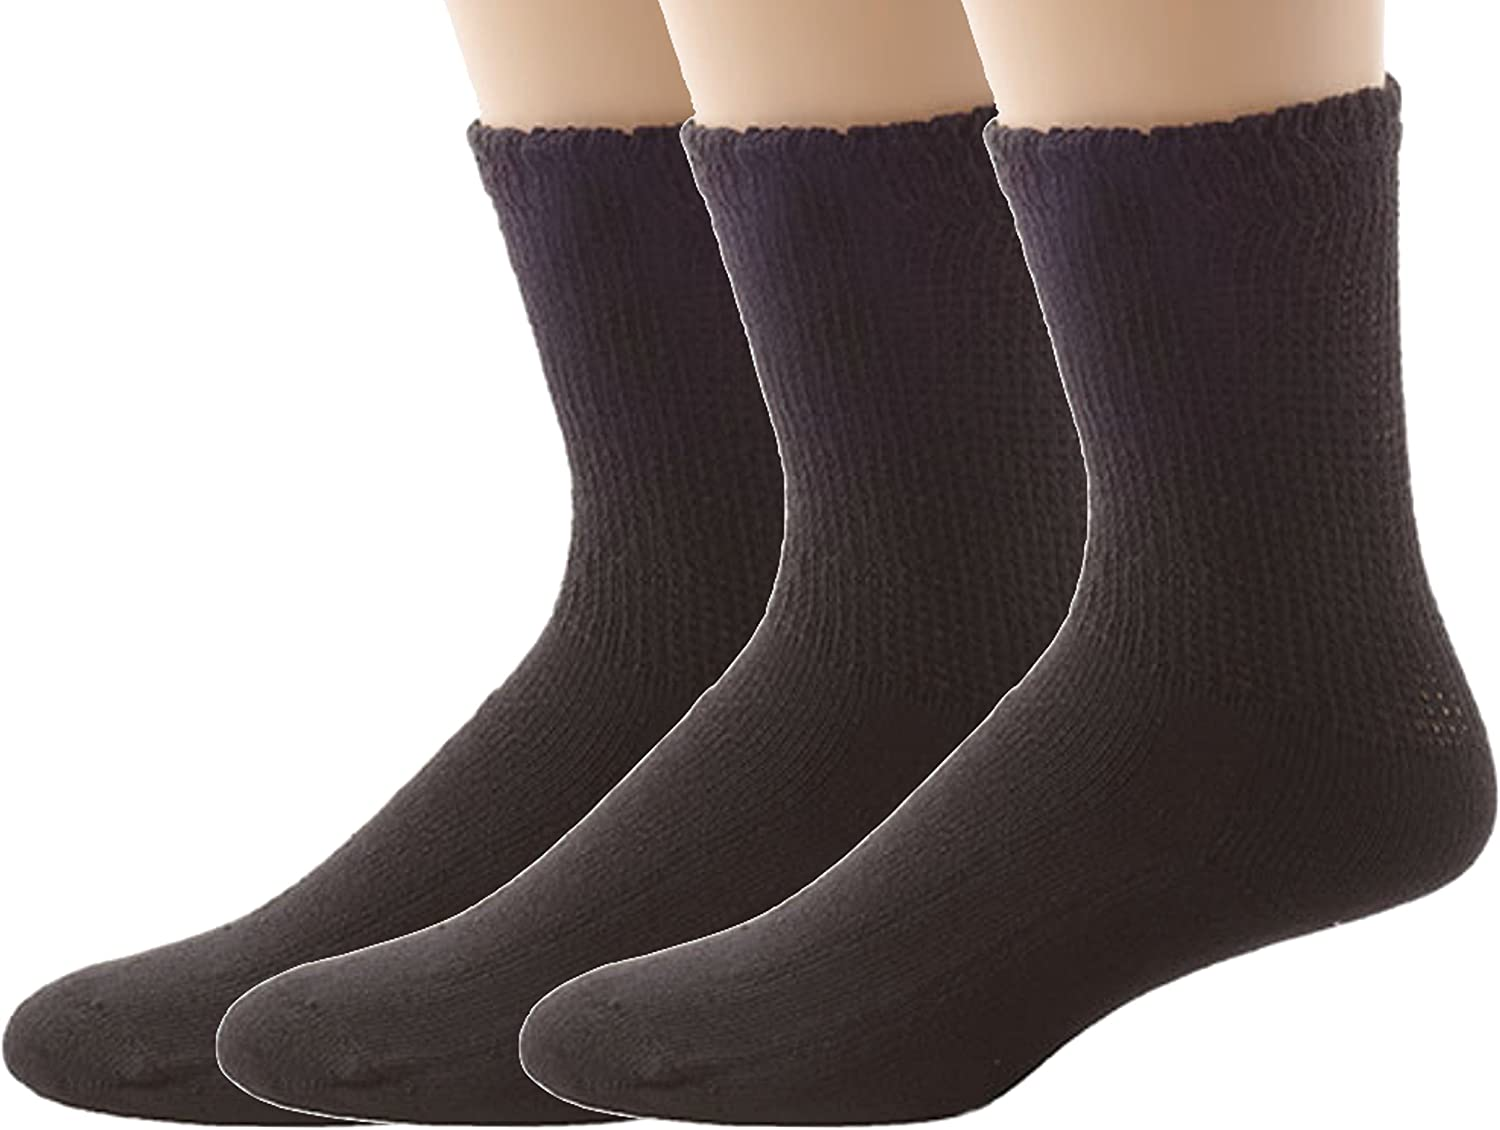 Details about  /Ladies non binding socks Diabetics 6 pair Made in USA